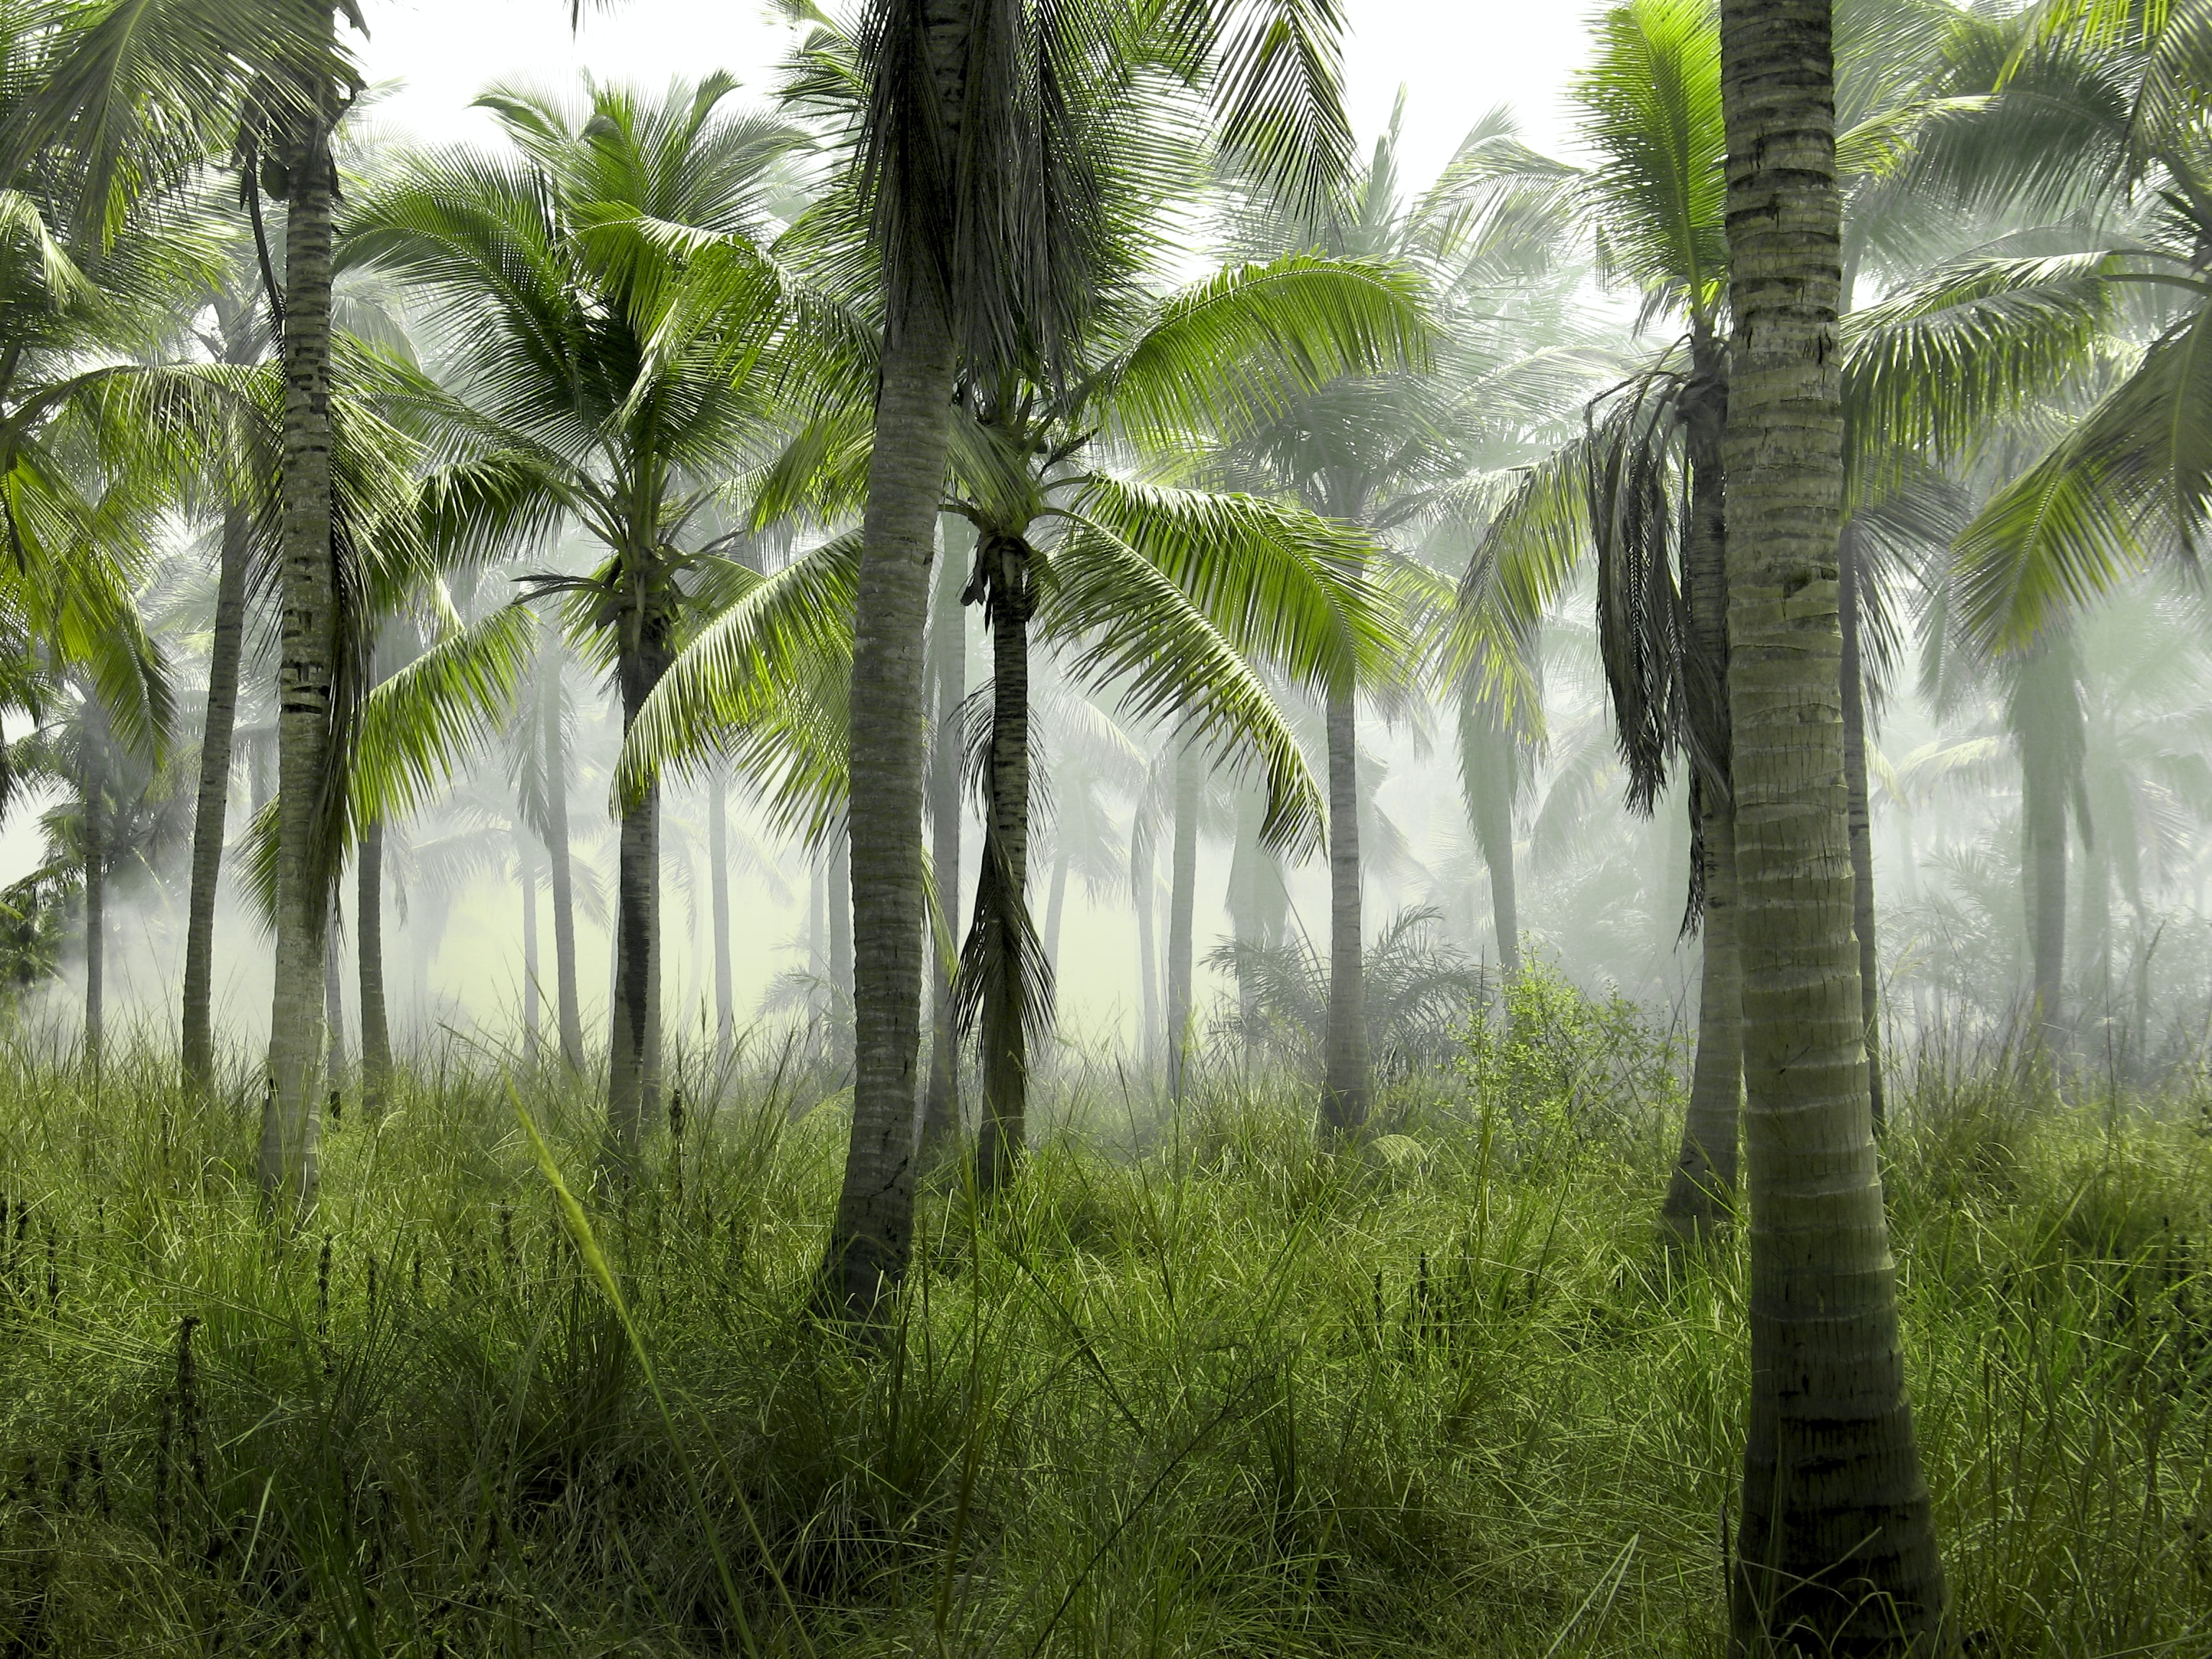 A large group of palm trees on grass on a sultry morning